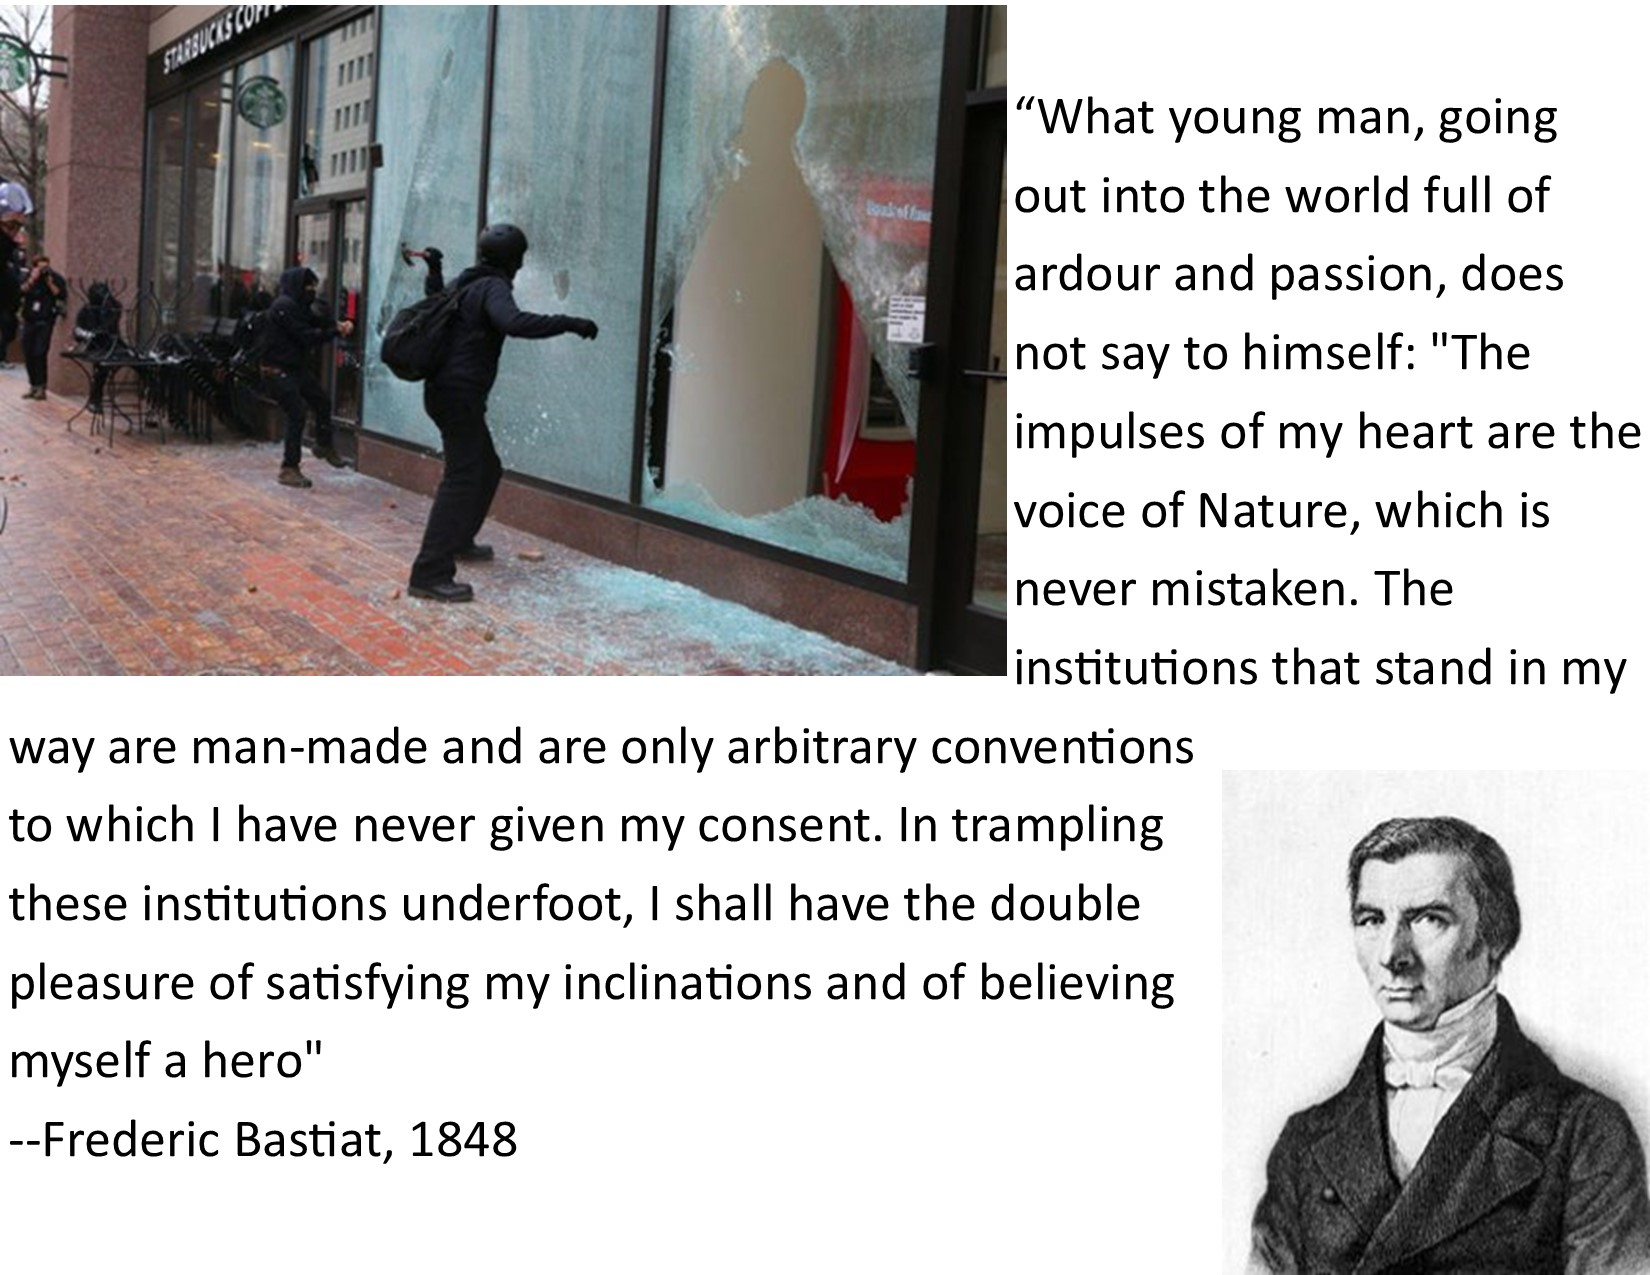 """…I shall have the double pleasure of satisfying my inclinations and of believing myself a hero."" ~Frederic Bastiat, [OC] [1650 x 1275]"